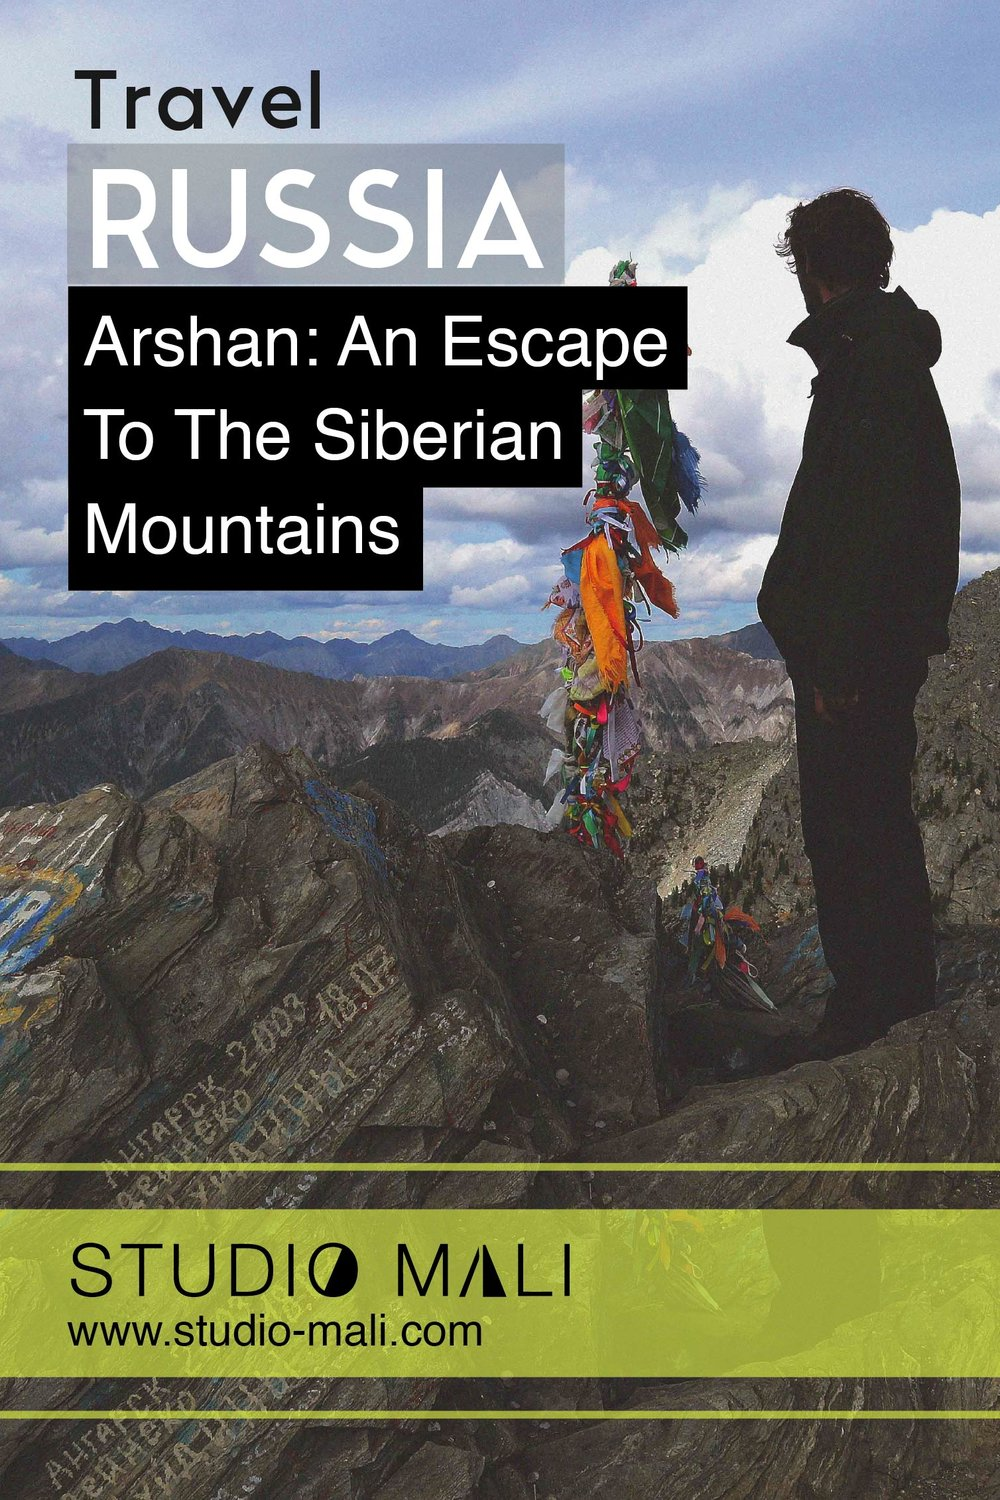 Russia - Arshan, An Escape To The Siberian Mountains, by Studio Mali